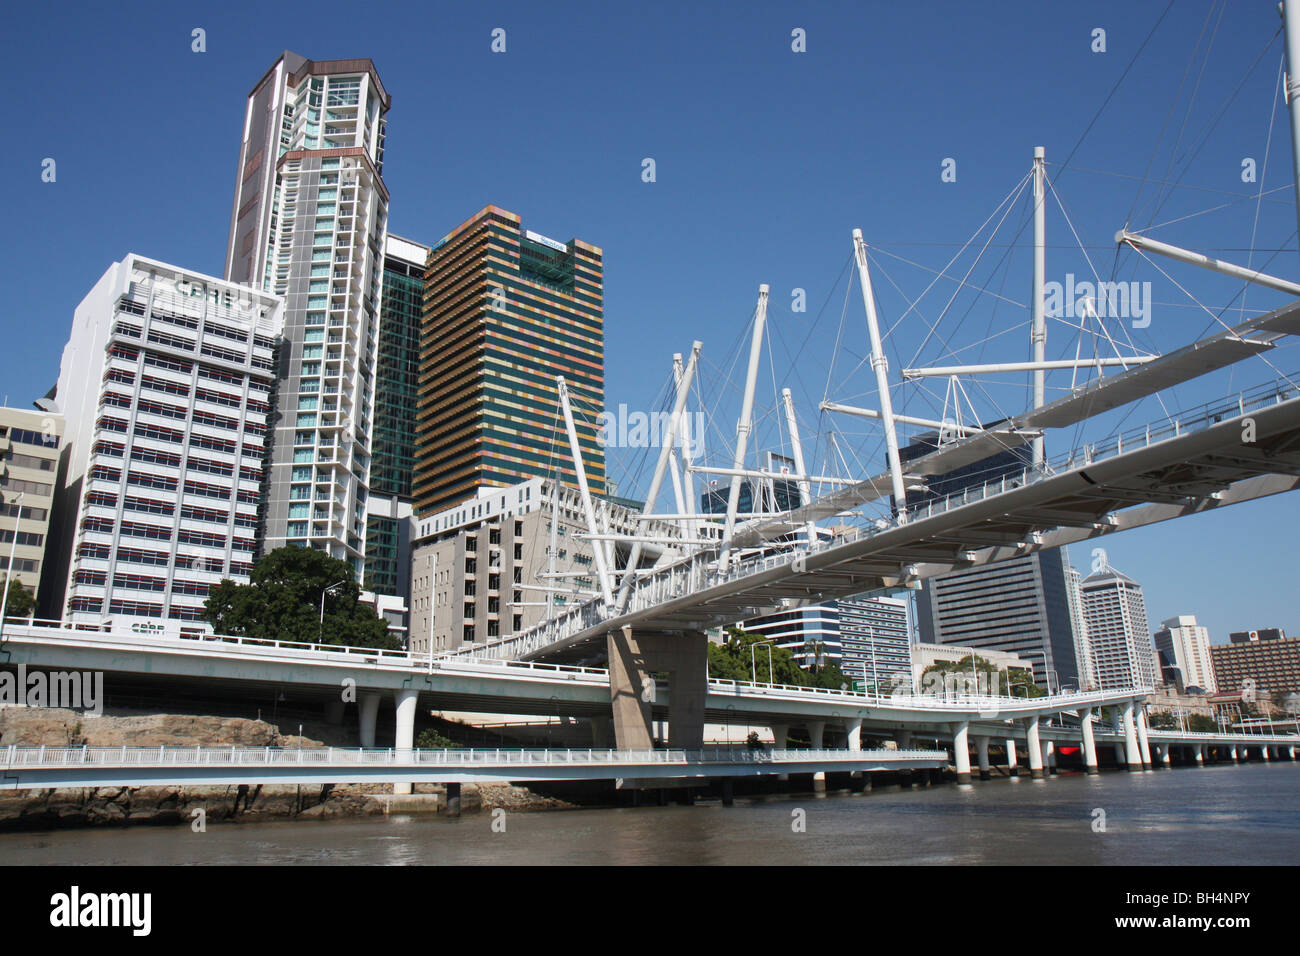 Kurilpa Bridge and Brisbane City Centre in Queensland, Australia on a sunny day - Stock Image